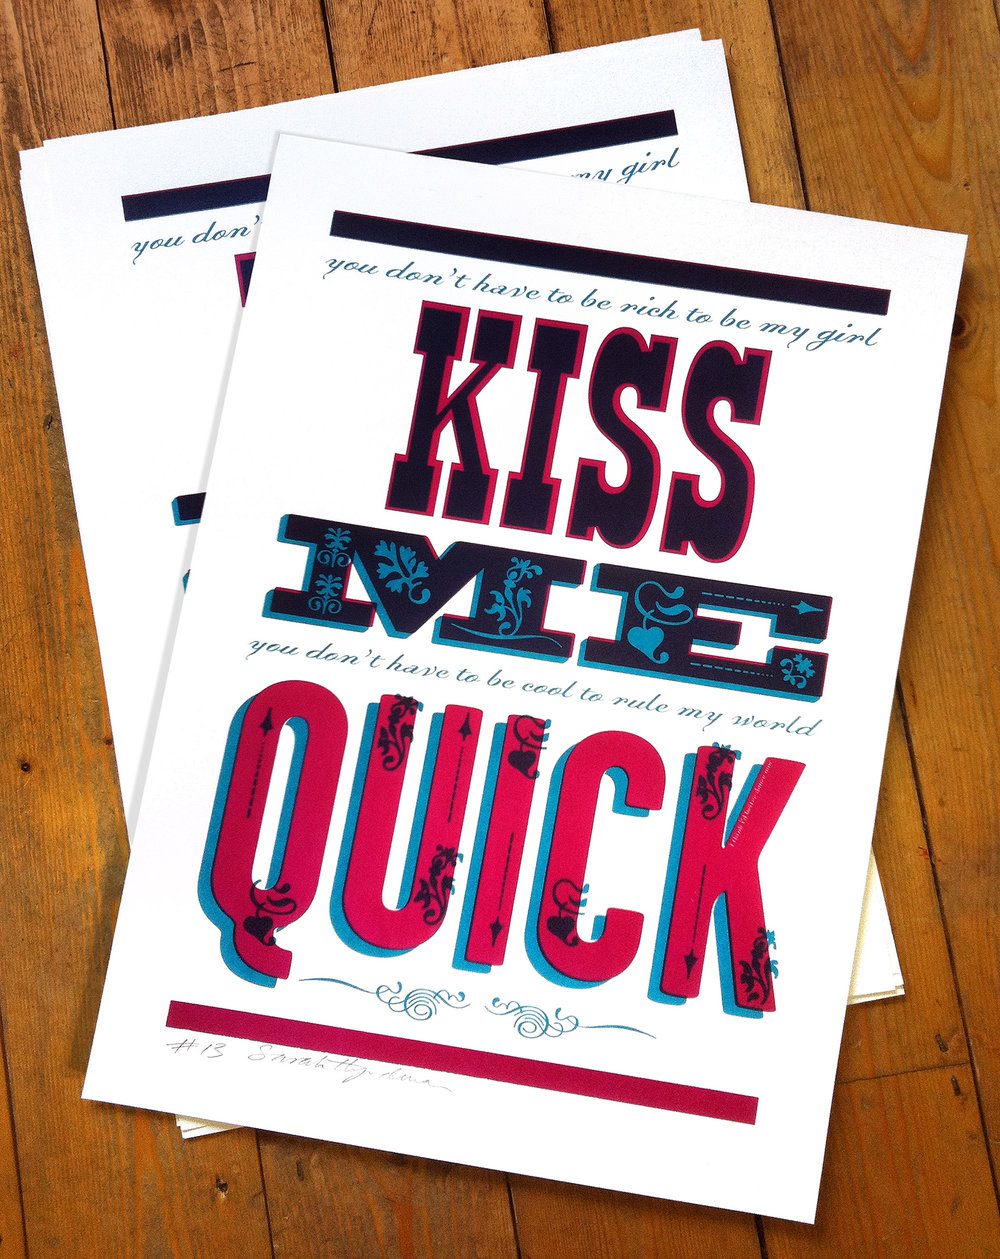 Kiss Me Quick screen print by Sarah Hyndman